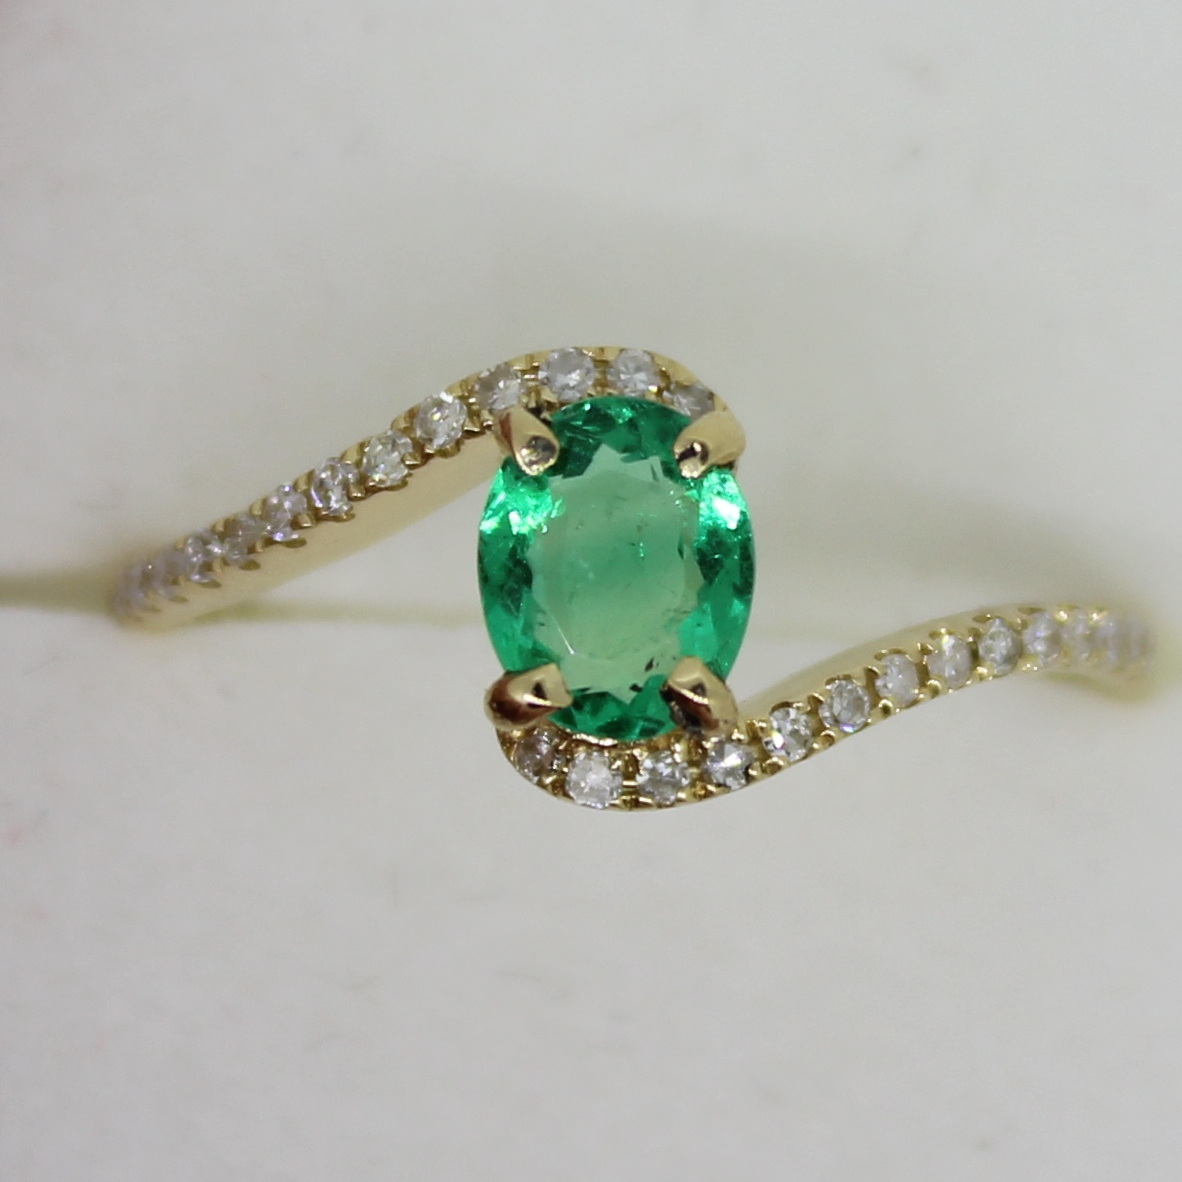 collections diamond ring square cut side emerlad with stones graff a classic trilliant rings emerald jewellery featuring